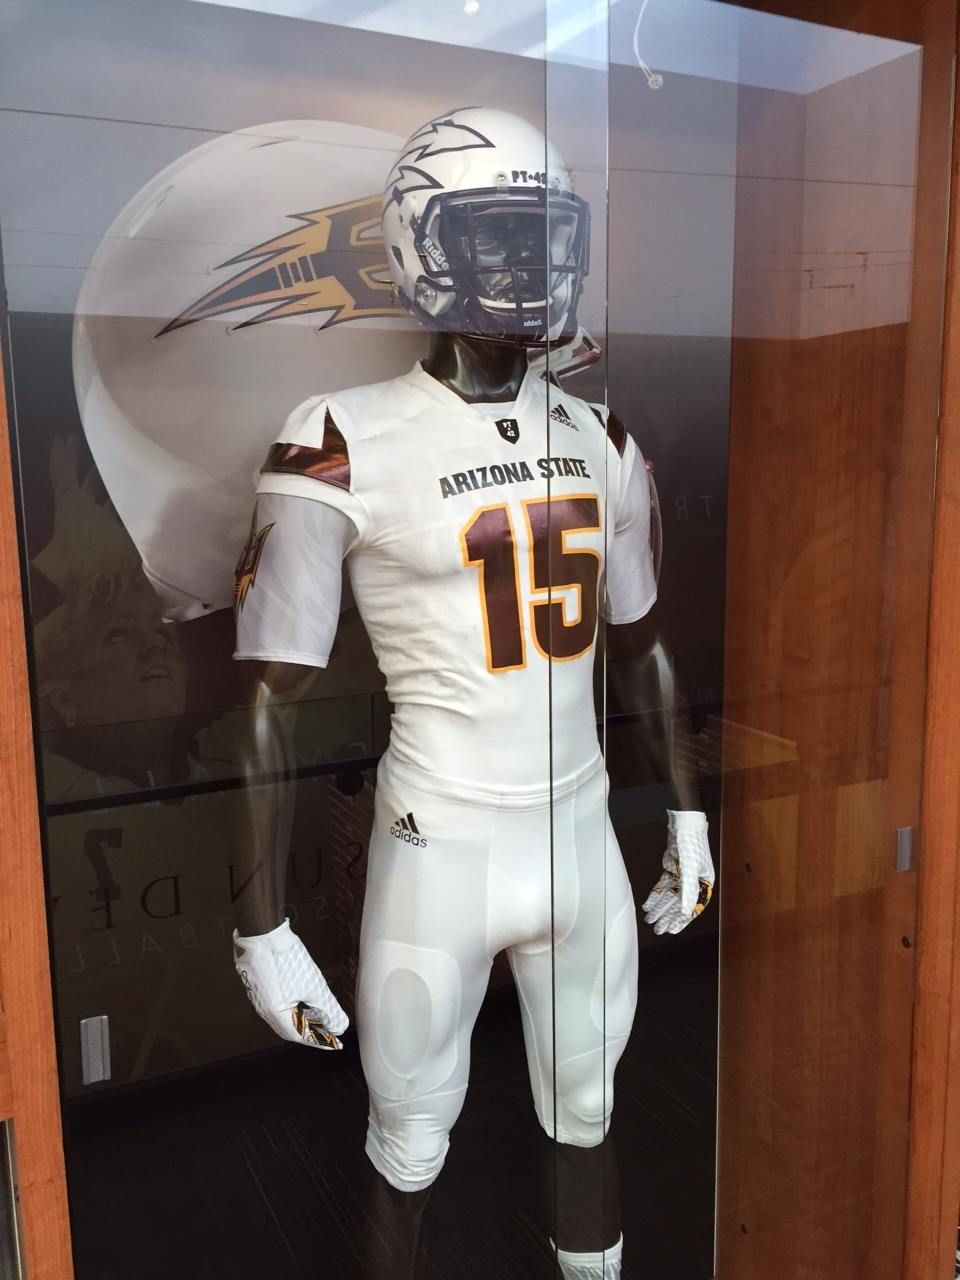 We Stopped By The Asu Football Offices To Get A Few More Shots Of